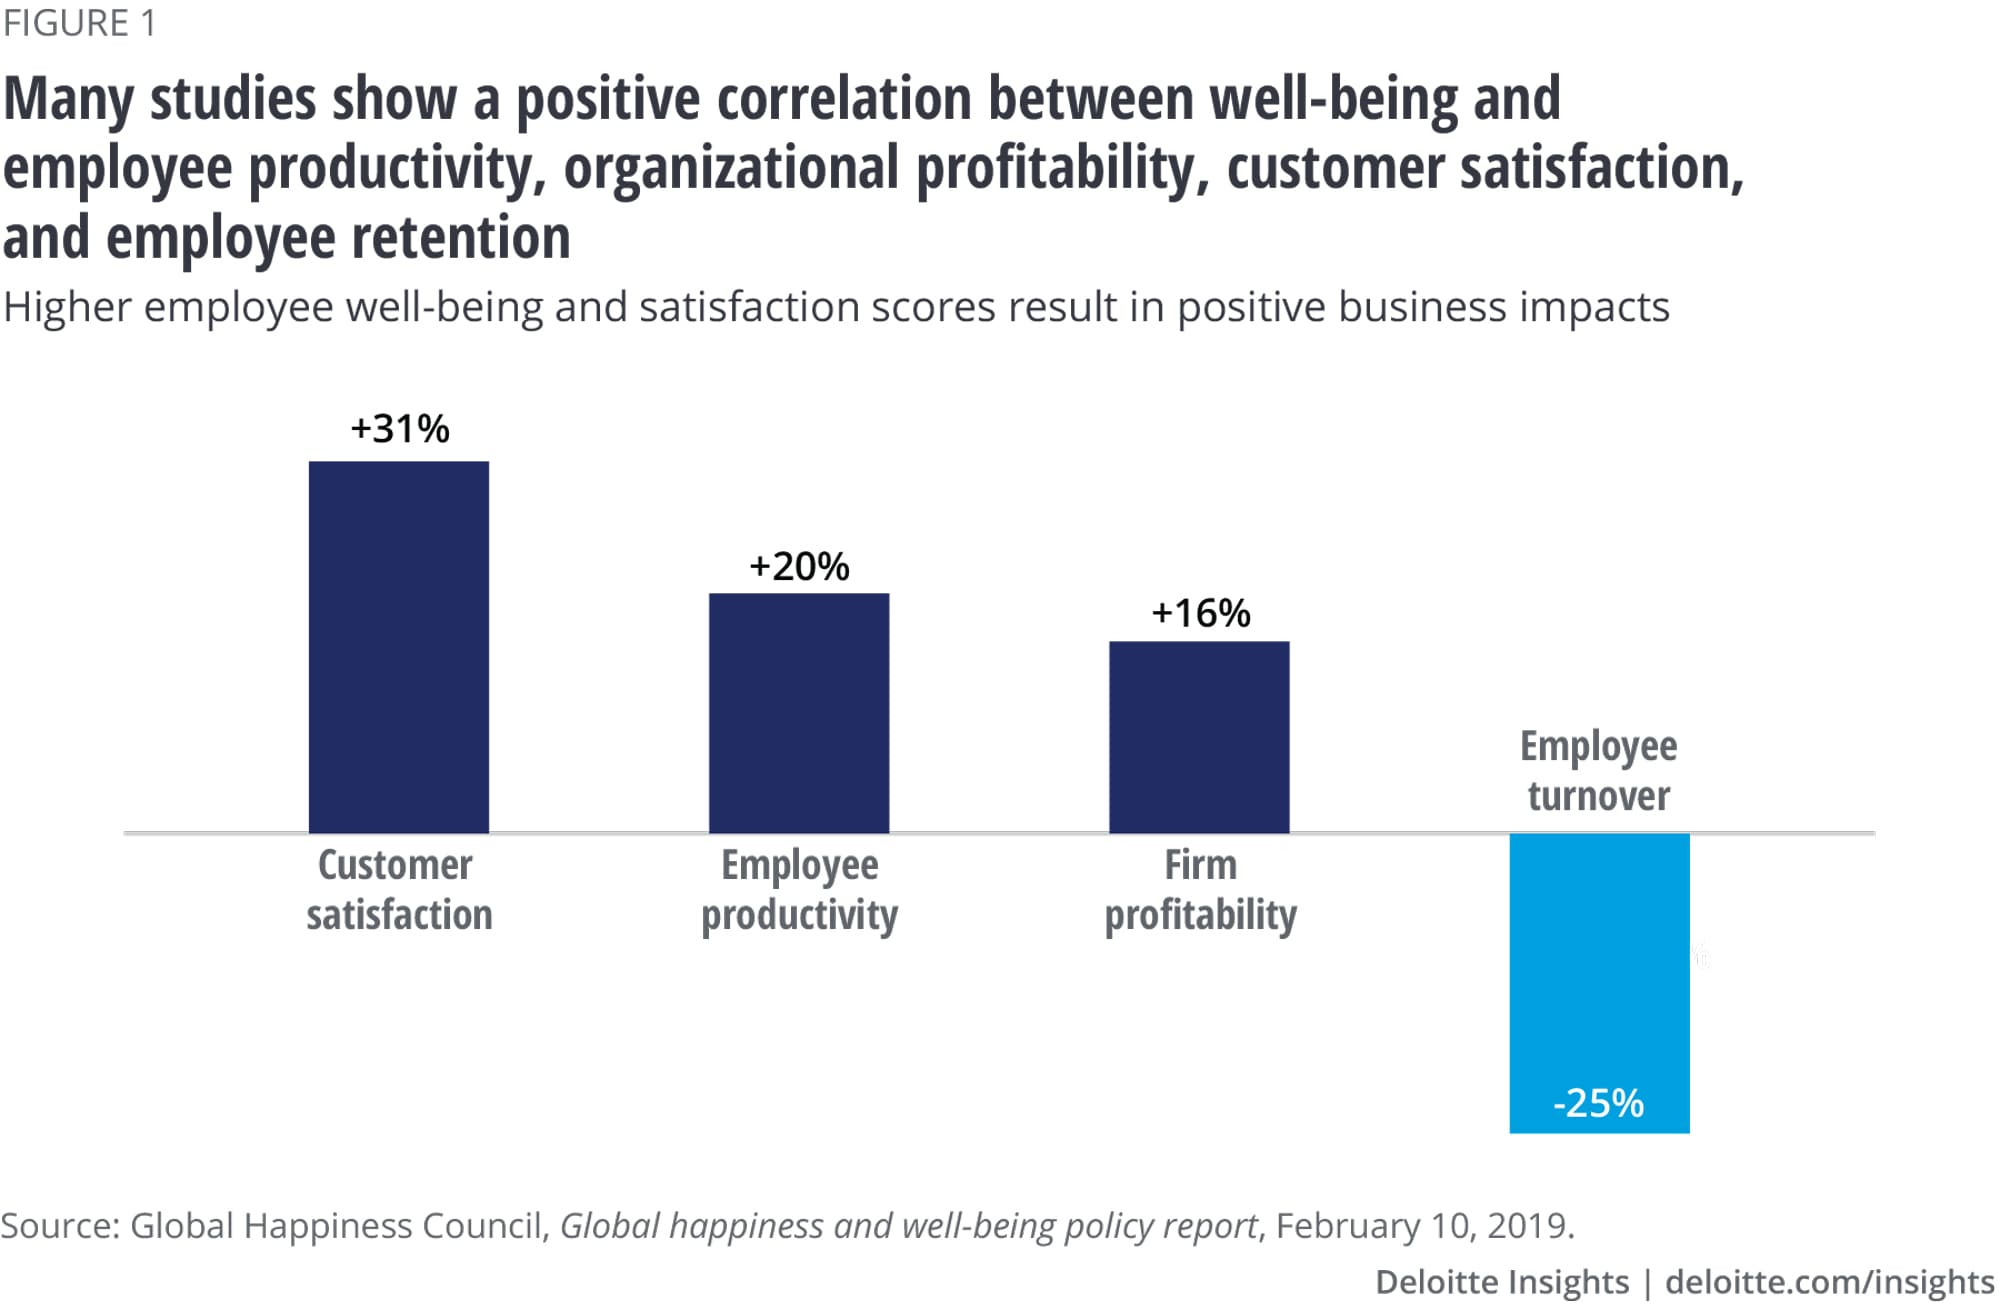 Many studies show a positive correlation between well-being and employee productivity, organizational profitability, customer satisfaction, and employee retention